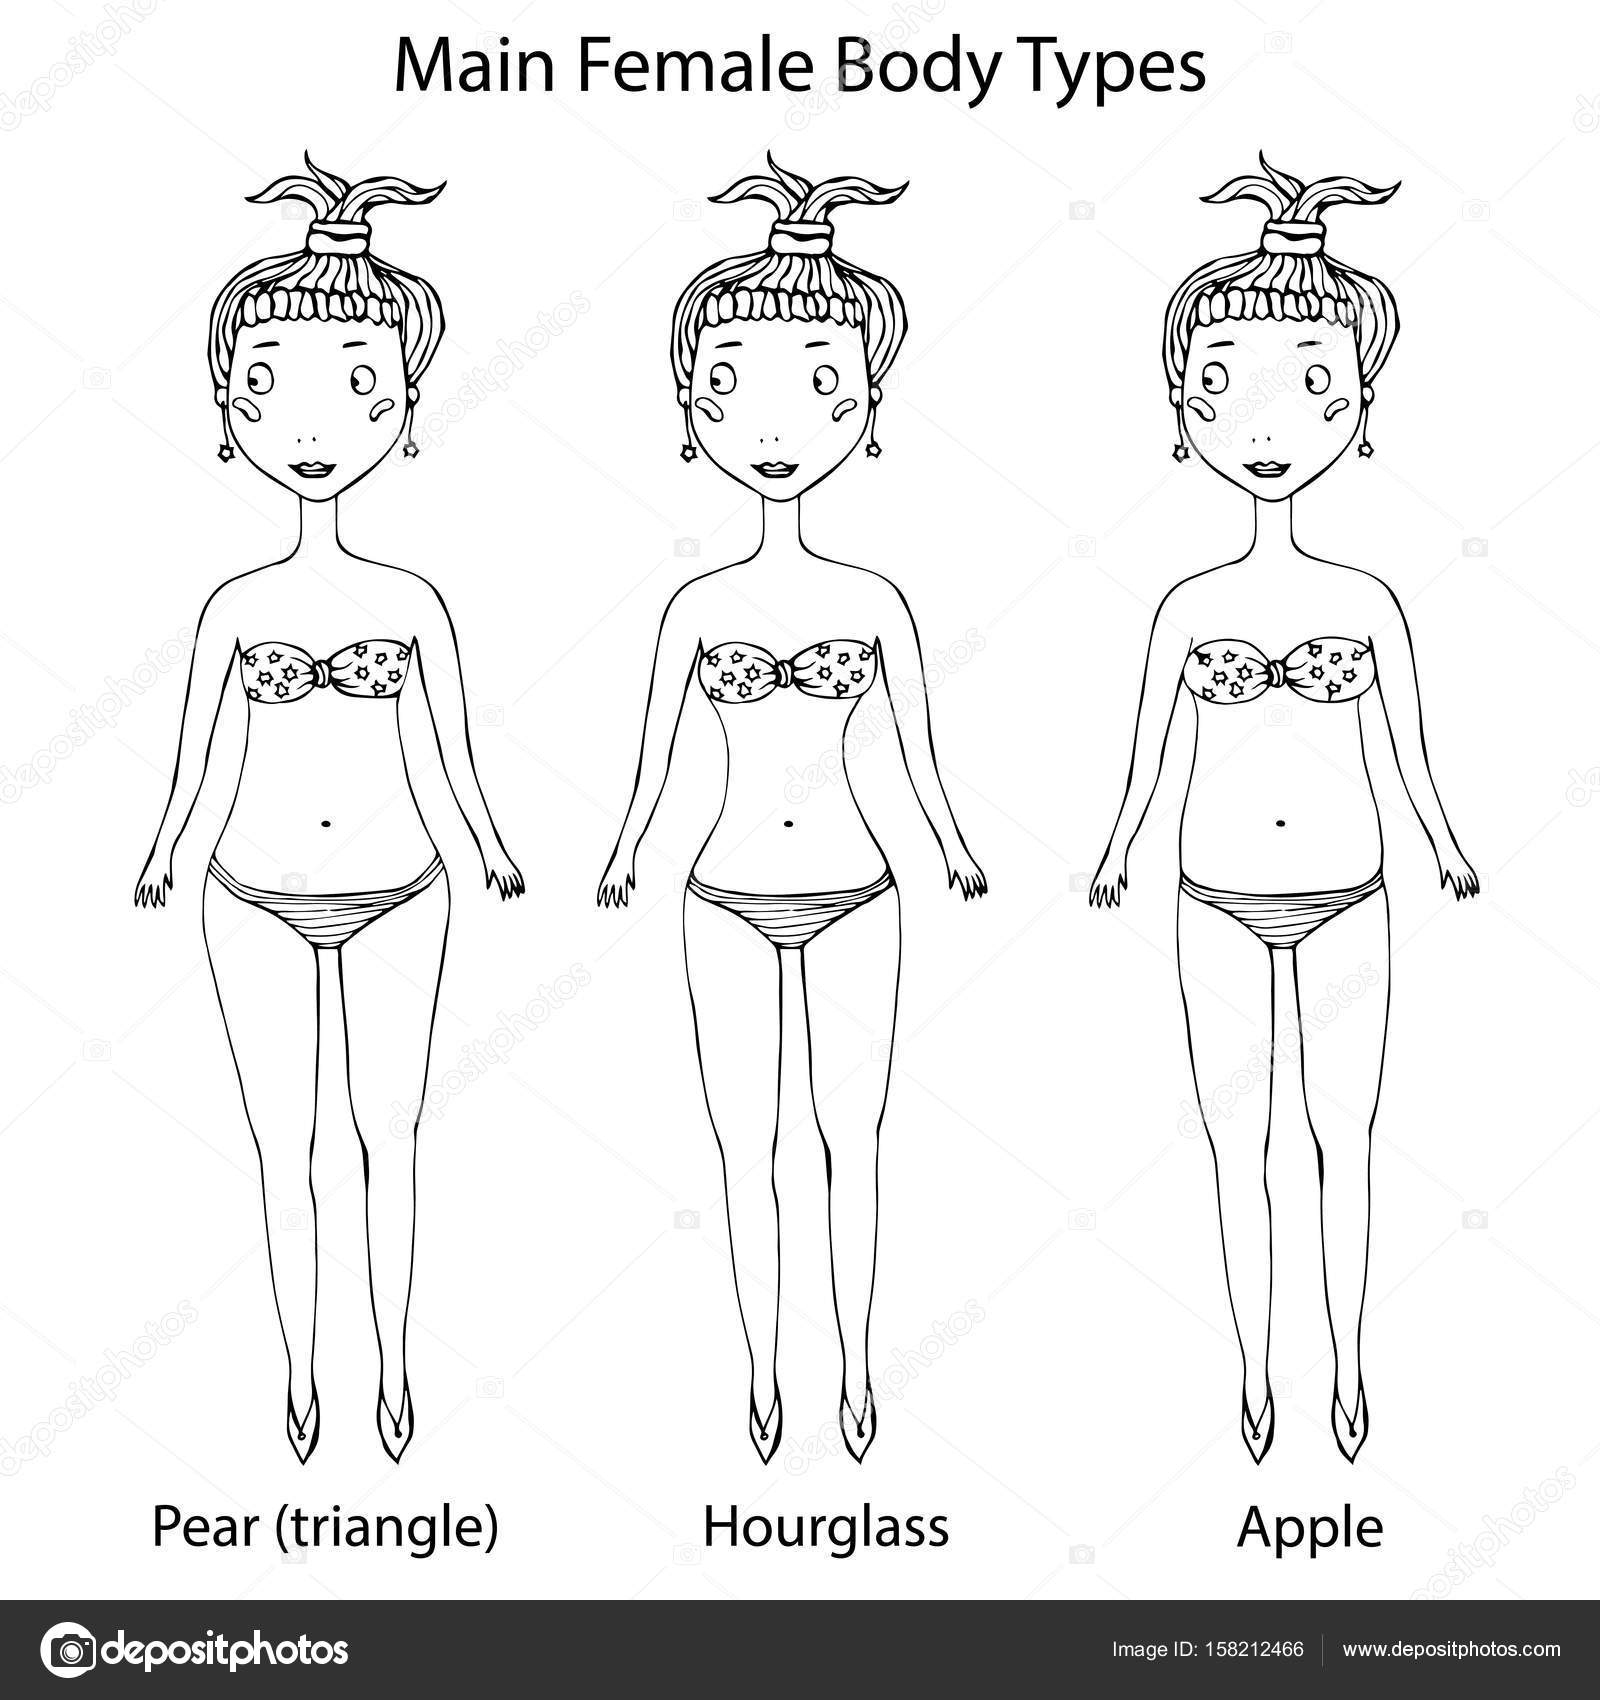 Main Female Body Shape Types  Hourglass, Pear or Triangle